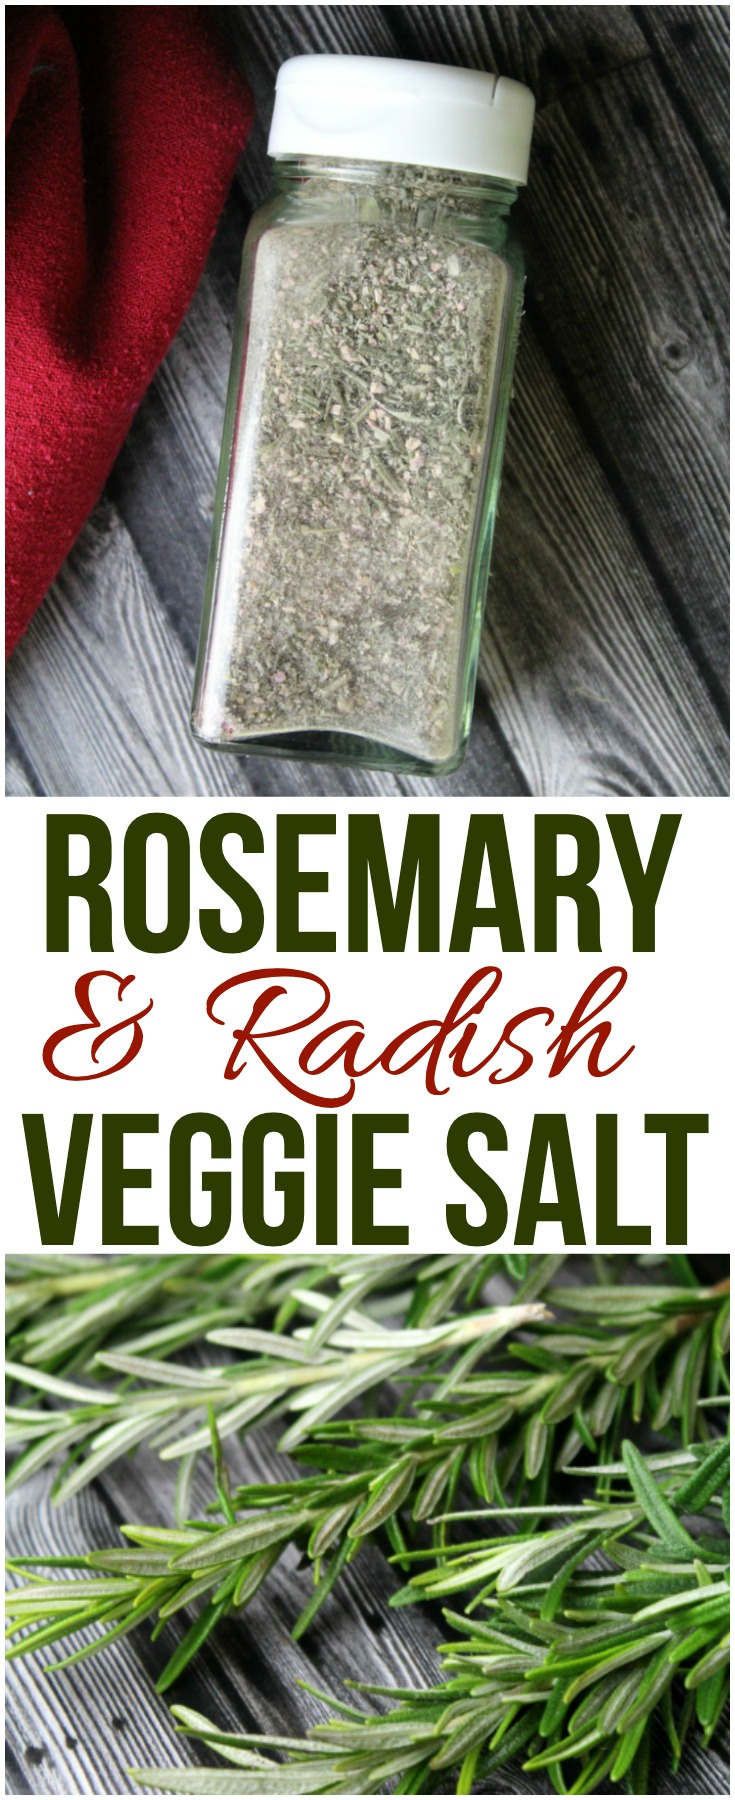 Rosemary Radish Veggie Salt is a simple and creative way to use up your garden bounty and a delicious way to flavor your favorite summer foods!